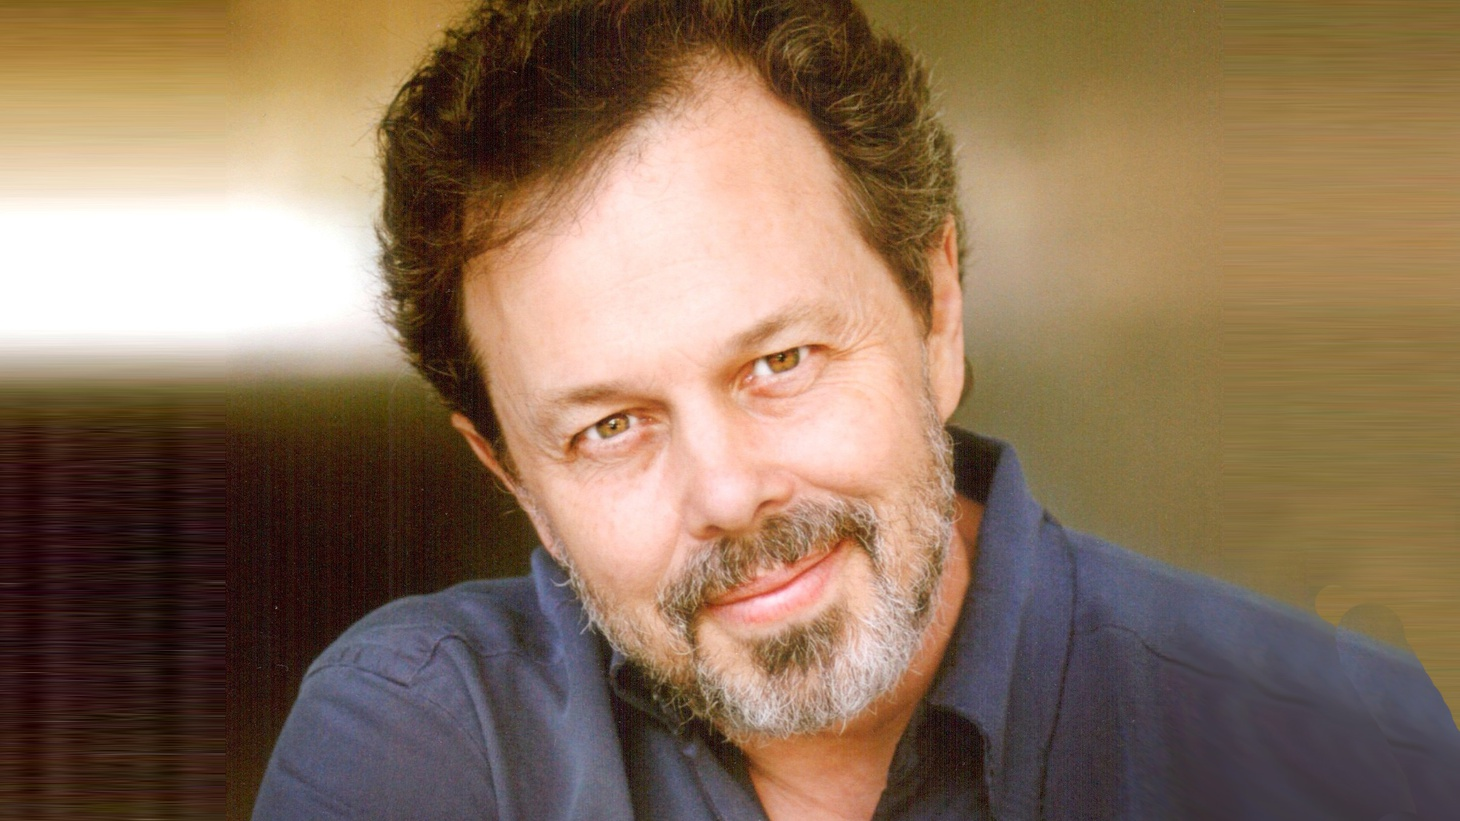 Character actor Curtis Armstrong auditioned for the 1984 comedy Revenge of the Nerds, hoping to play the lead. The filmmakers saw him in the lesser role of Booger. At first, Armstrong told his agent, no way. But that role became a standout in Armstrong's long career as a character actor in film and TV. He shares stories of Booger and beyond in his new memoir.